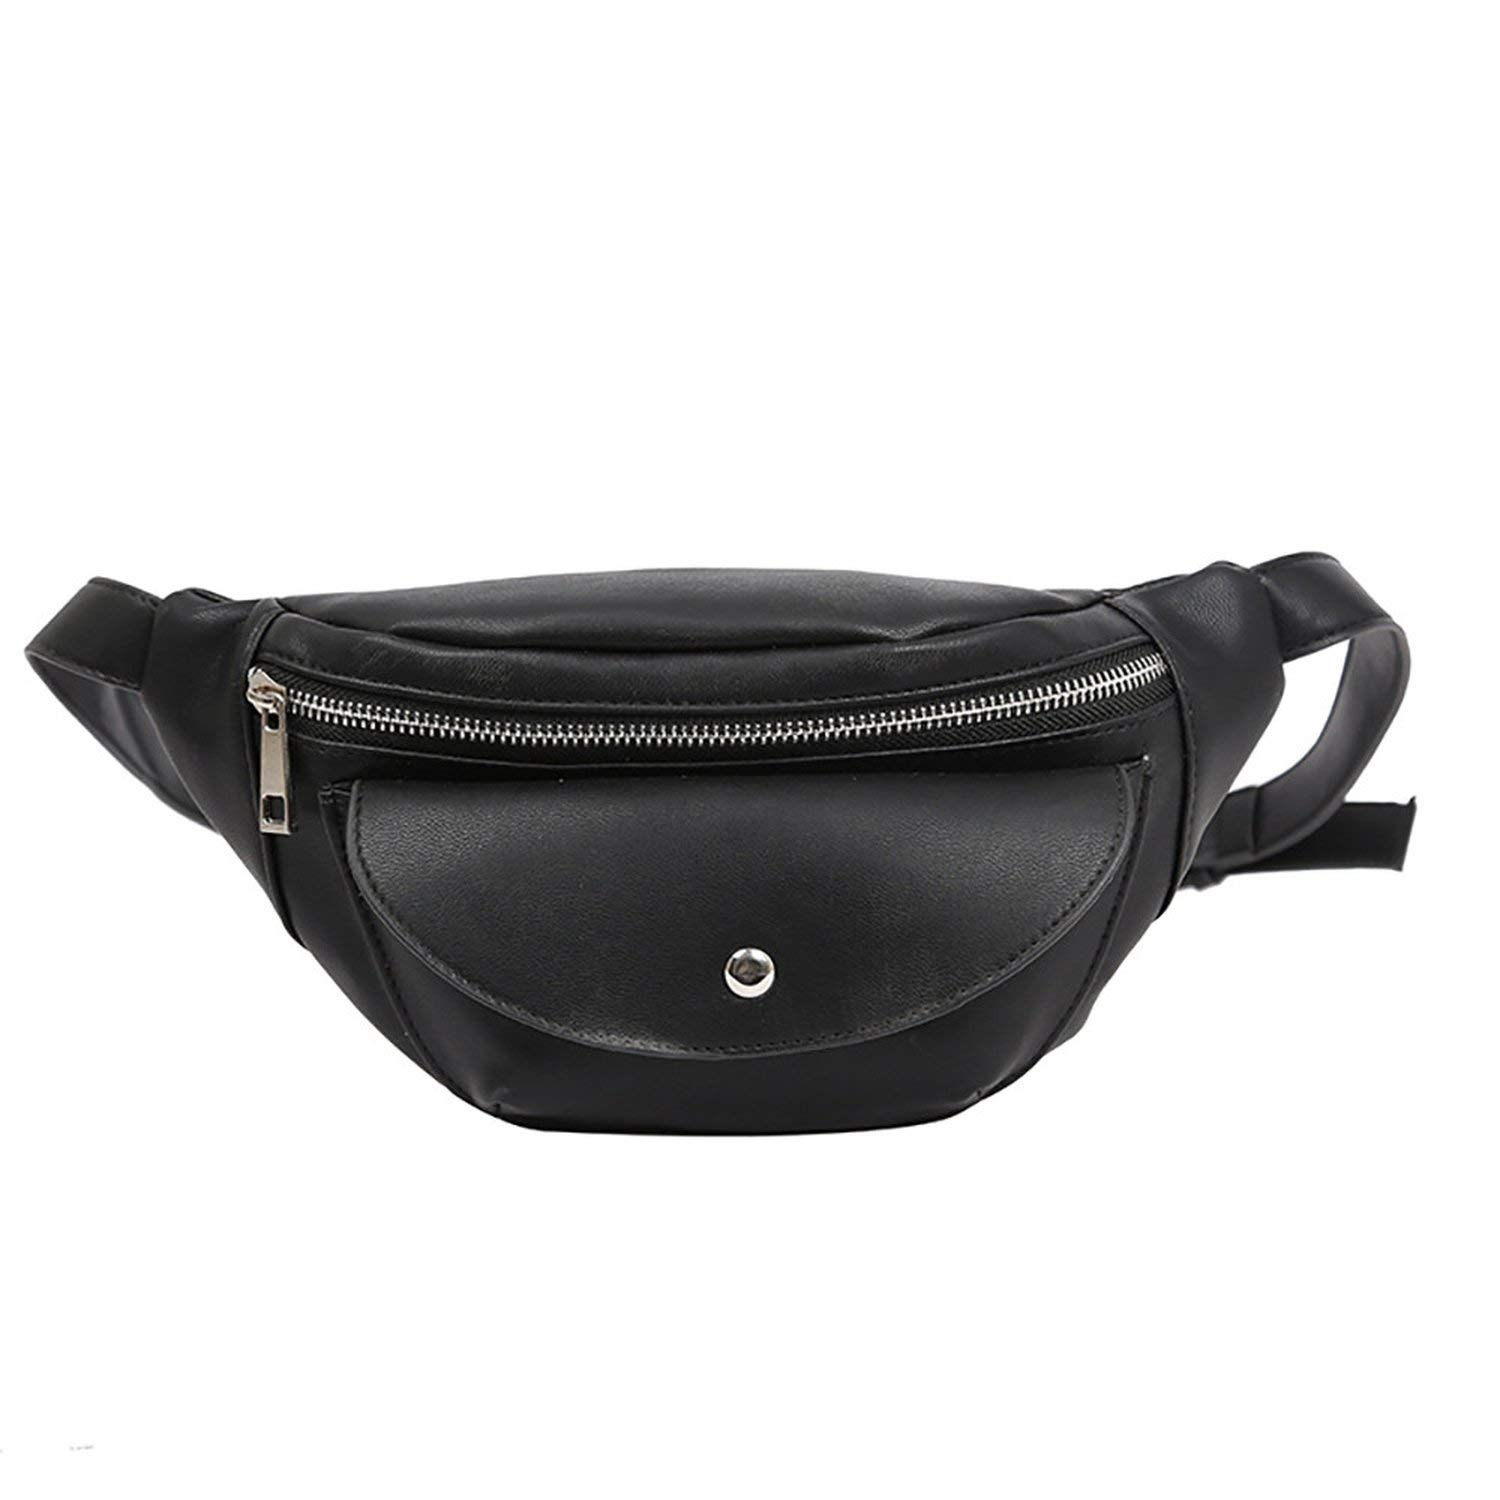 Simple pu Leather fanny packs unisex fashionable chest bag versatile waist bags,Black